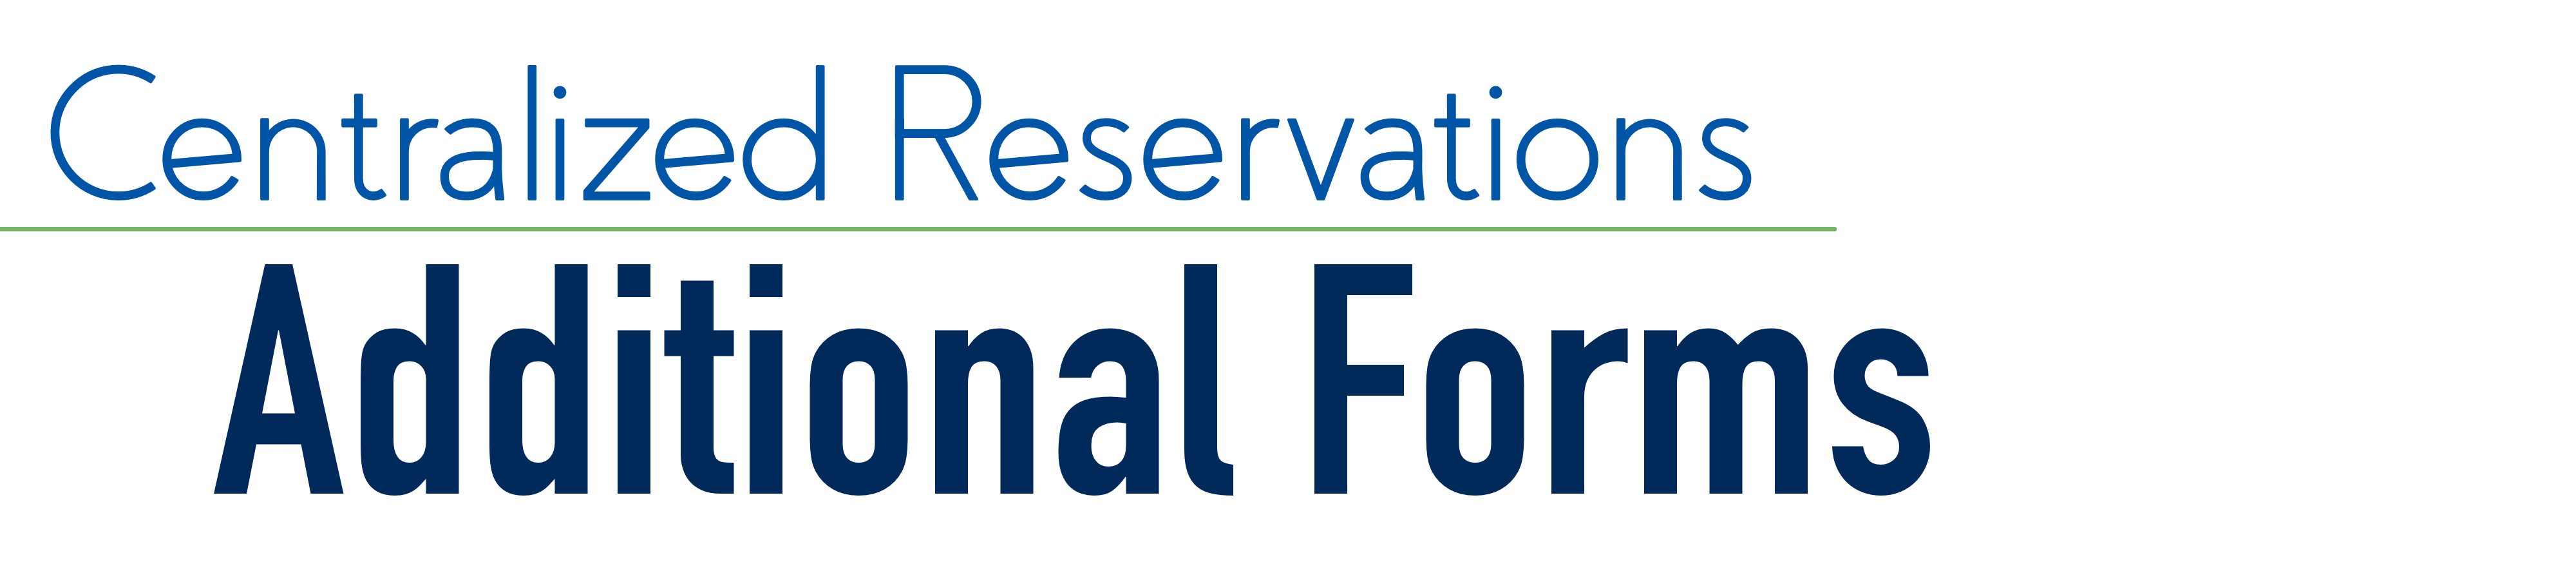 Additional Reservation Forms